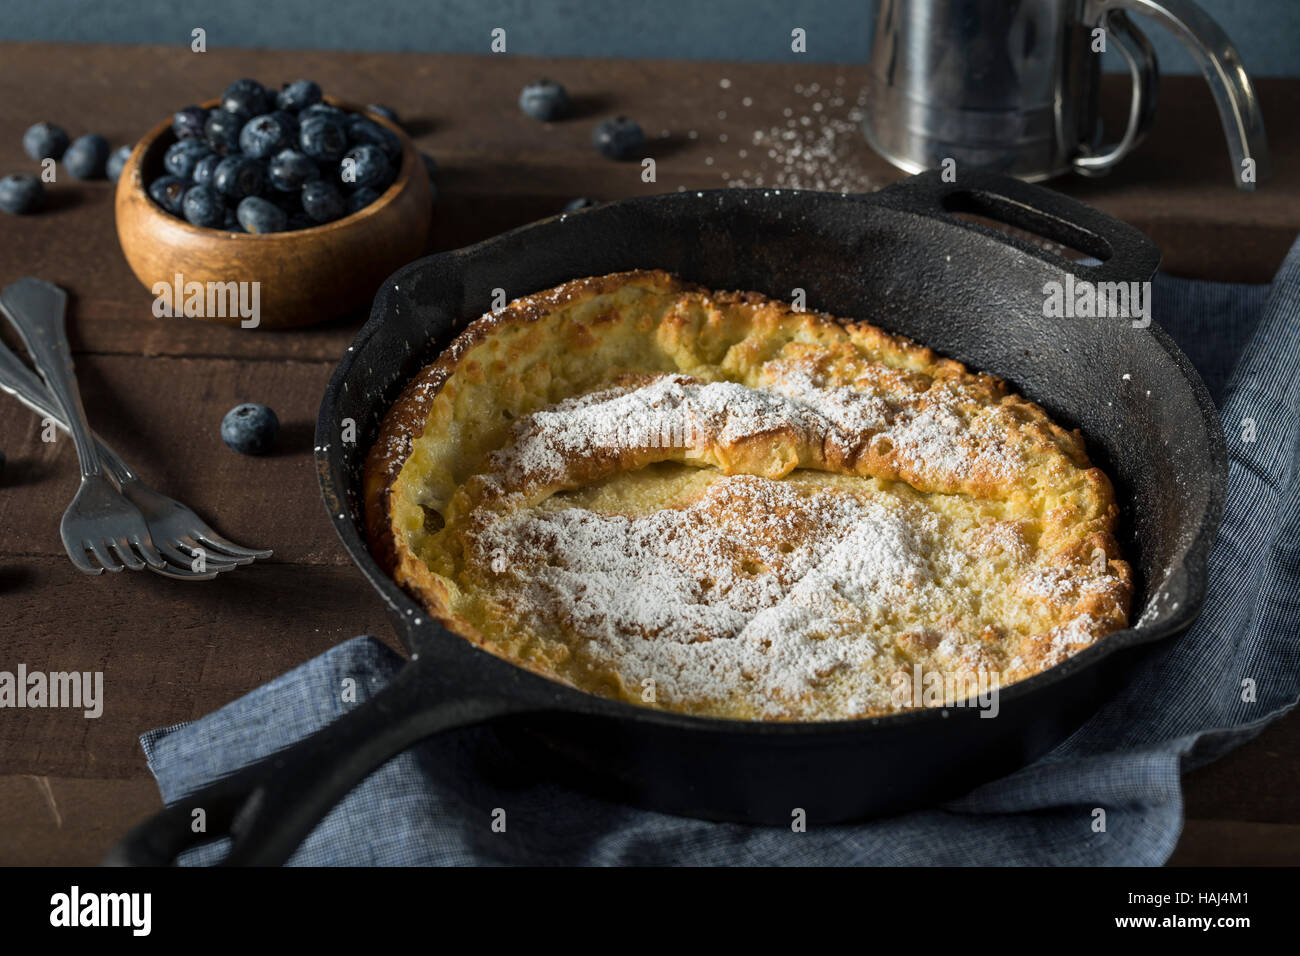 Homemade Dutch Baby Pancake with Blueberries and Powdered Sugar - Stock Image